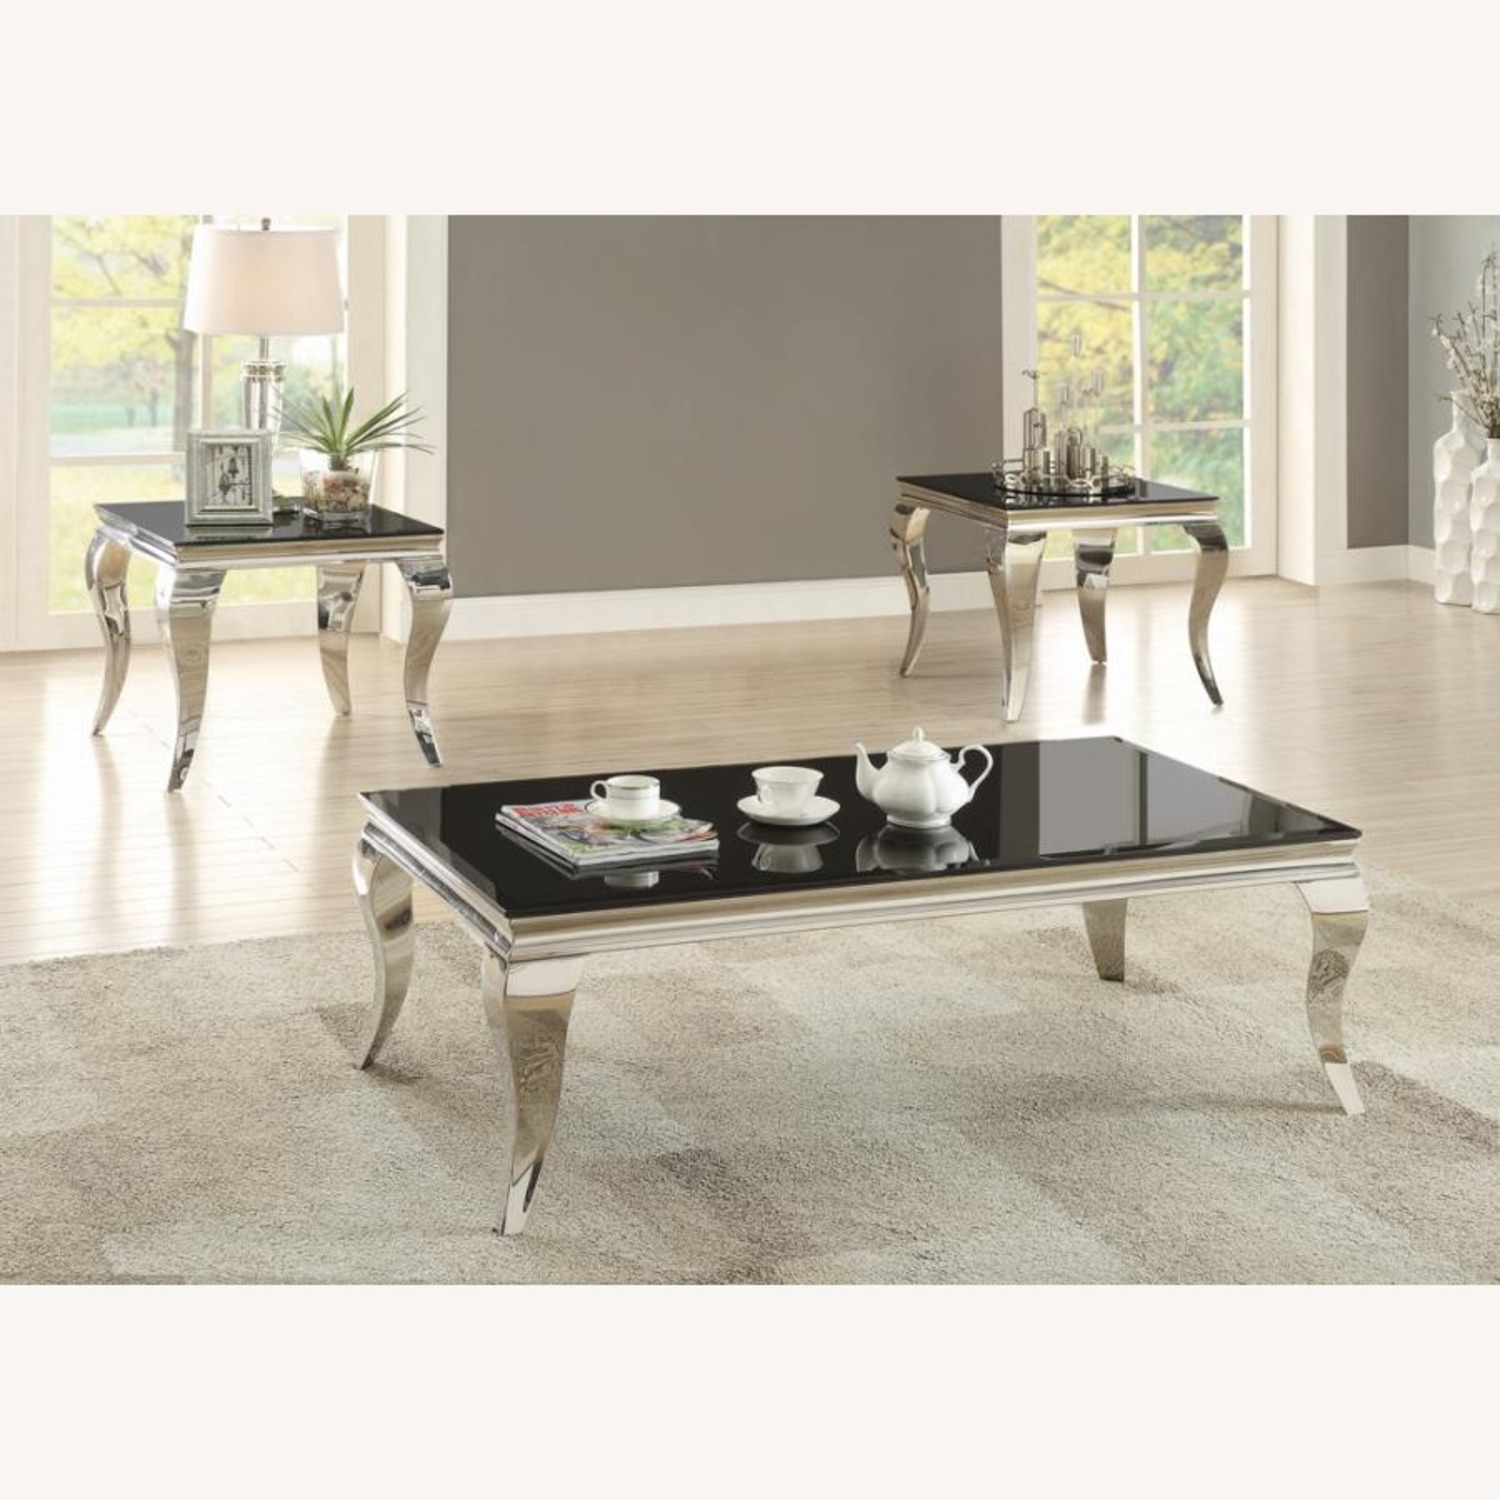 Elegant End Table In Chrome Accent Finish - image-2